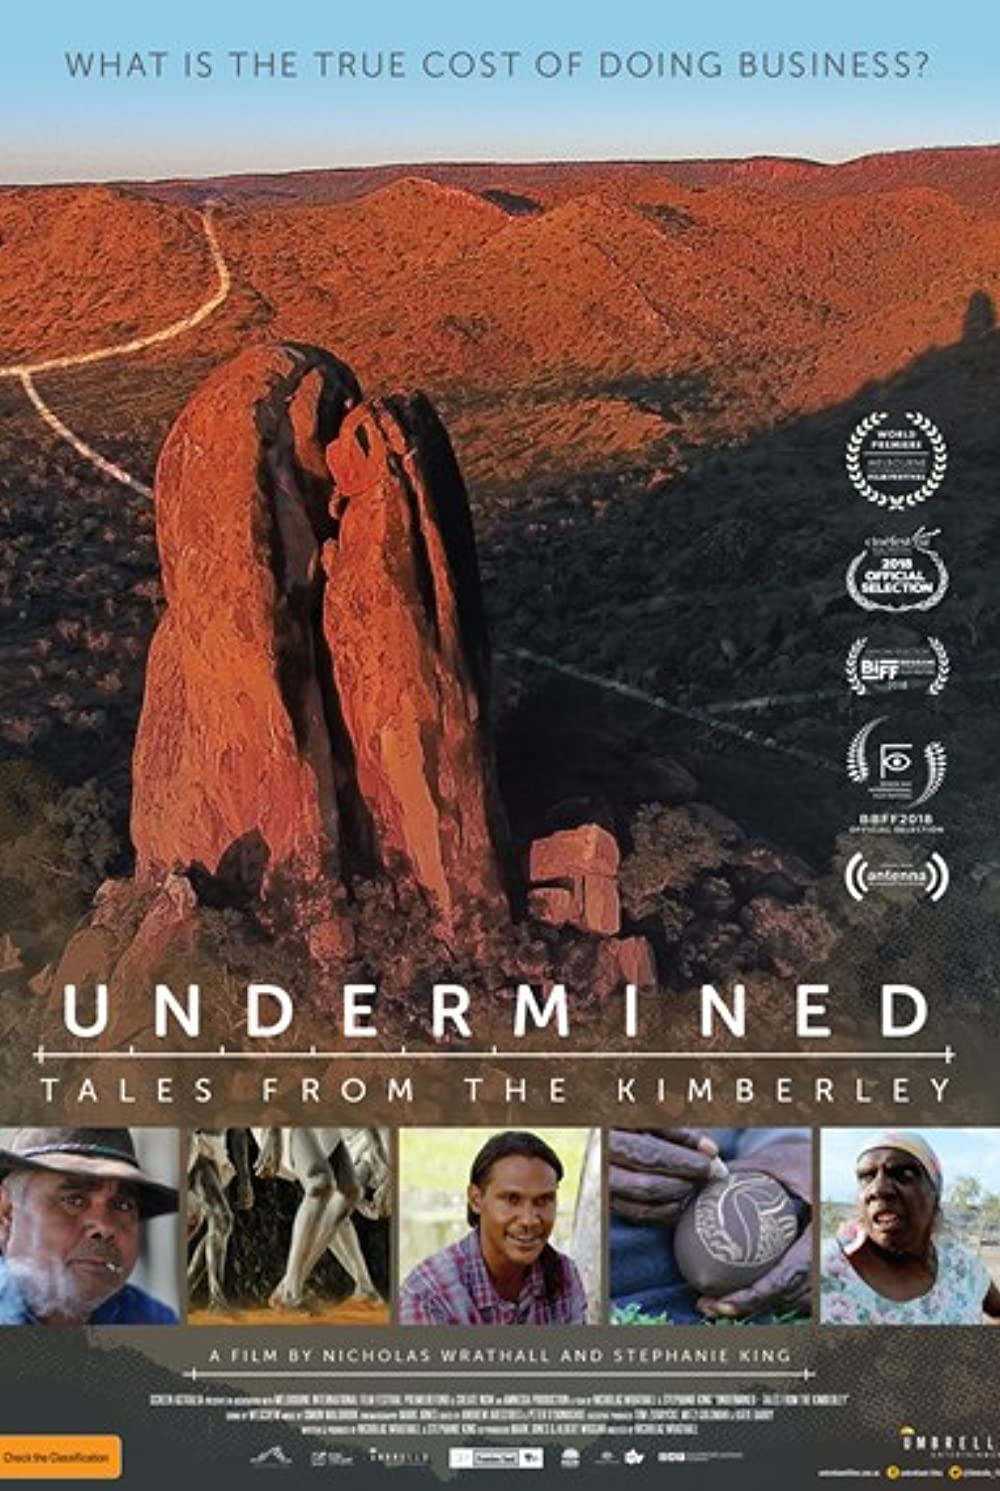 Watch Undermined - Tales from the Kimberley Online